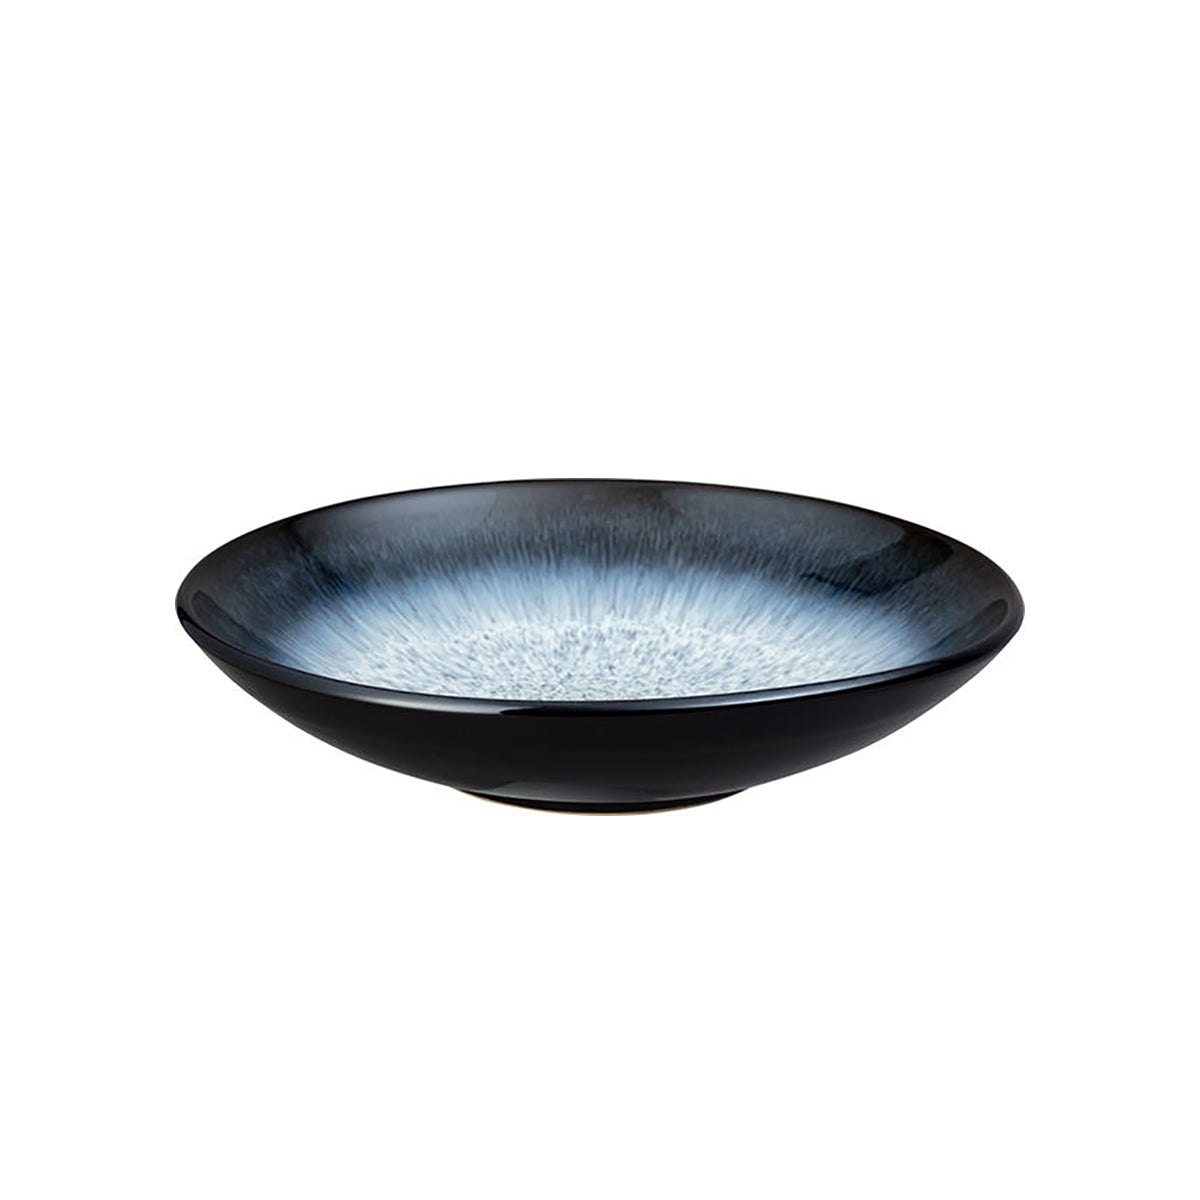 Halo Serving Bowl Medium